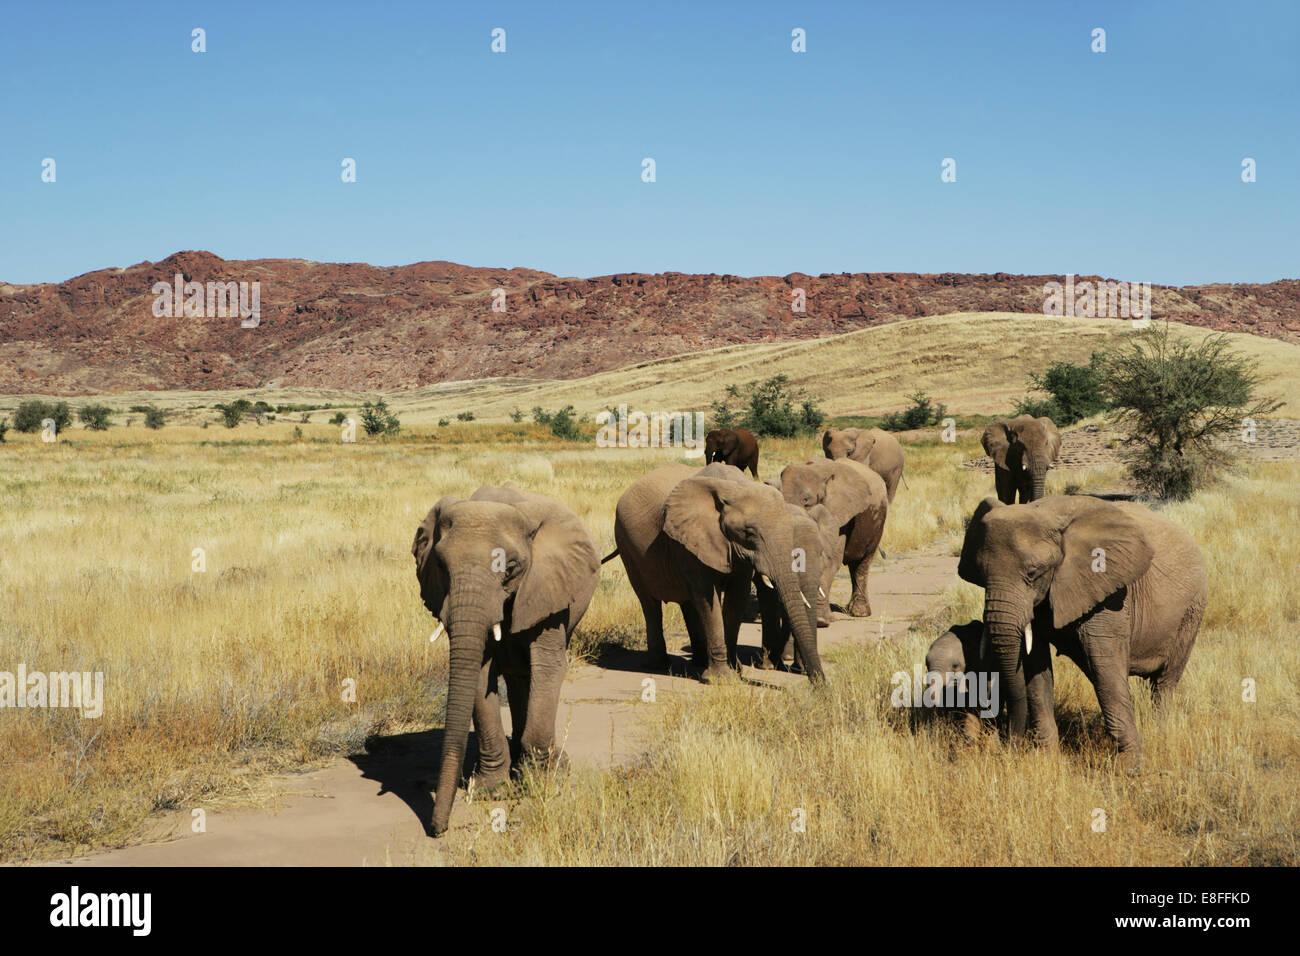 Herd of elephants, Namibia - Stock Image